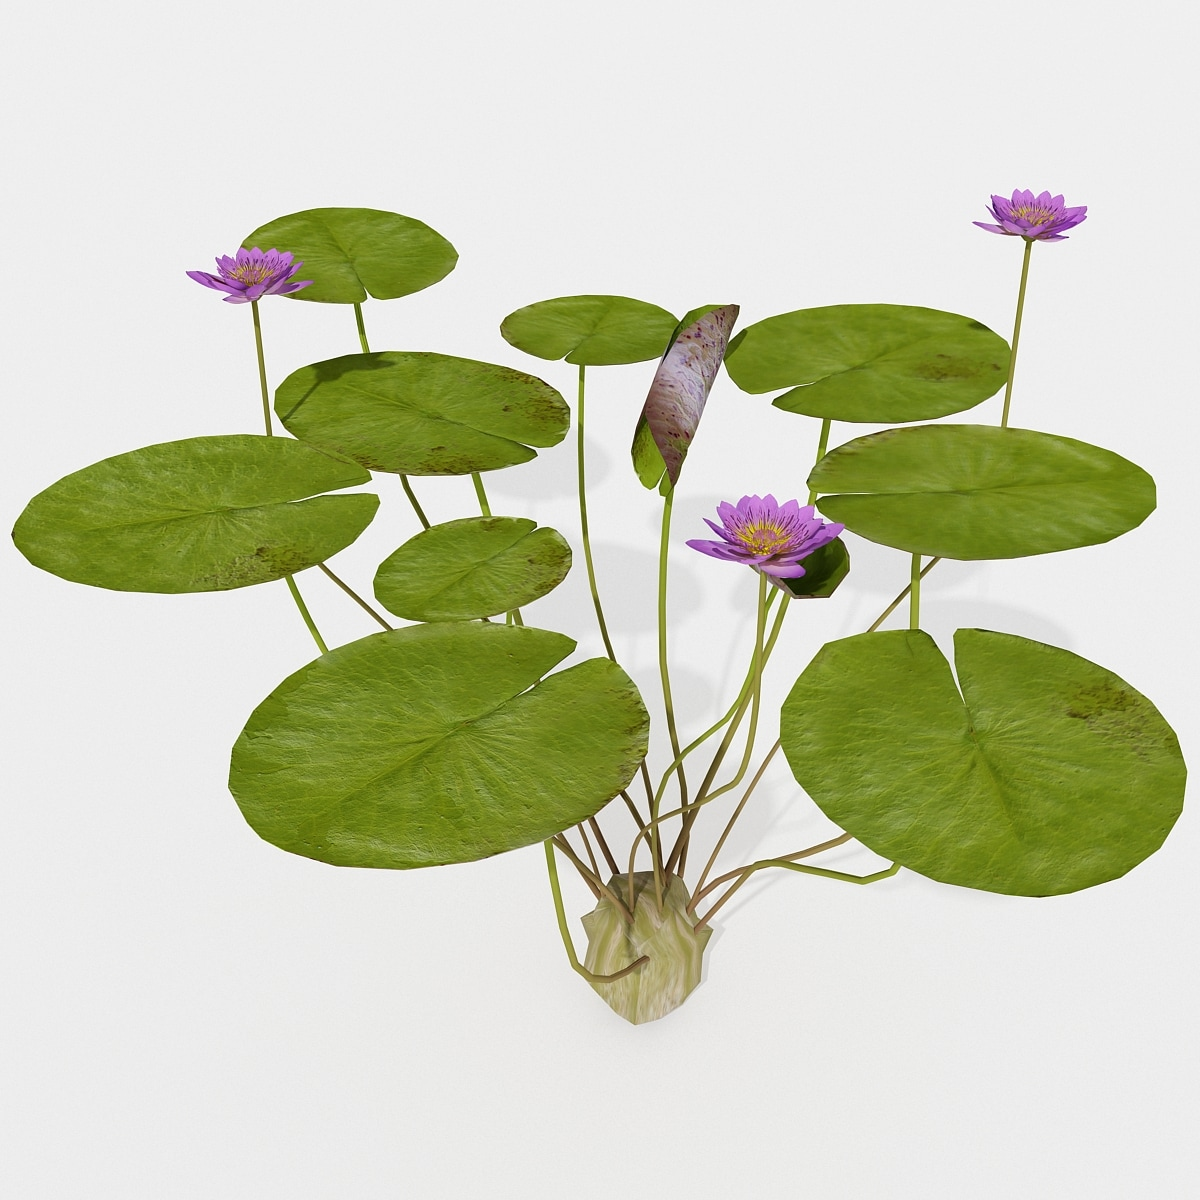 146305_Water_Lily_2_001.jpg